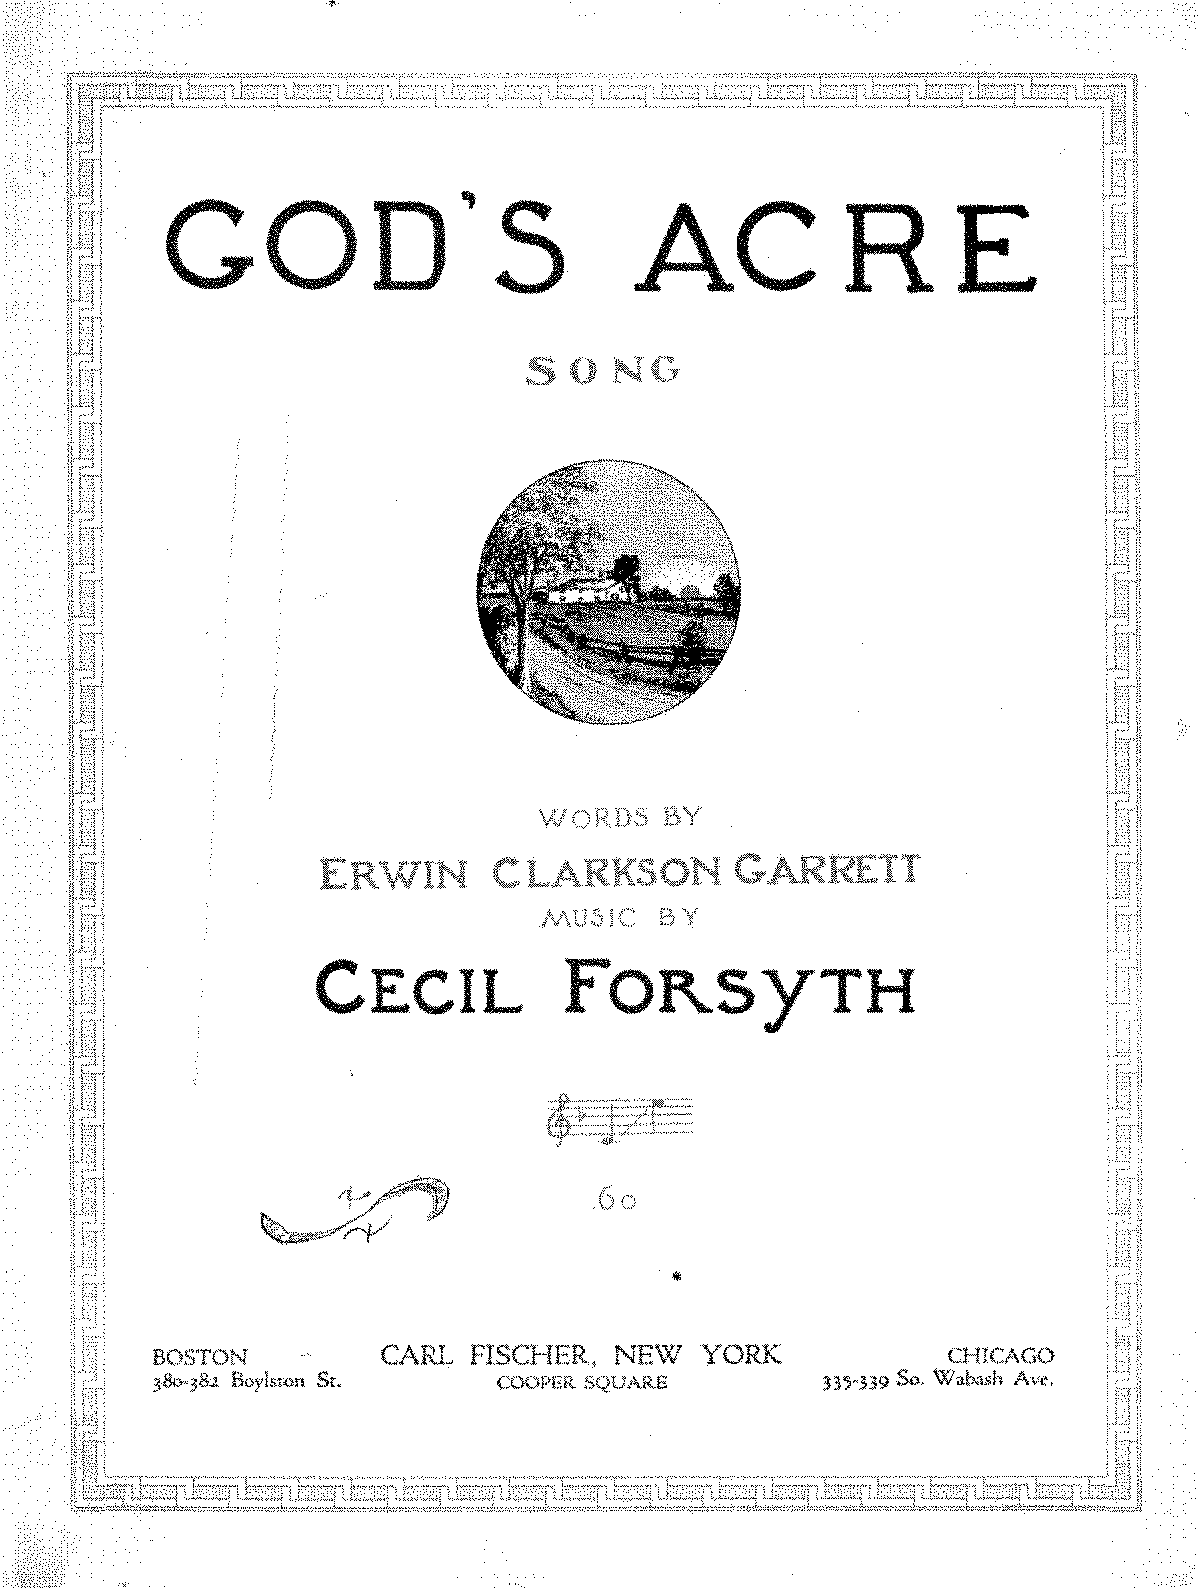 God's Acre (Forsyth, Cecil) - IMSLP/Petrucci Music Library: Free